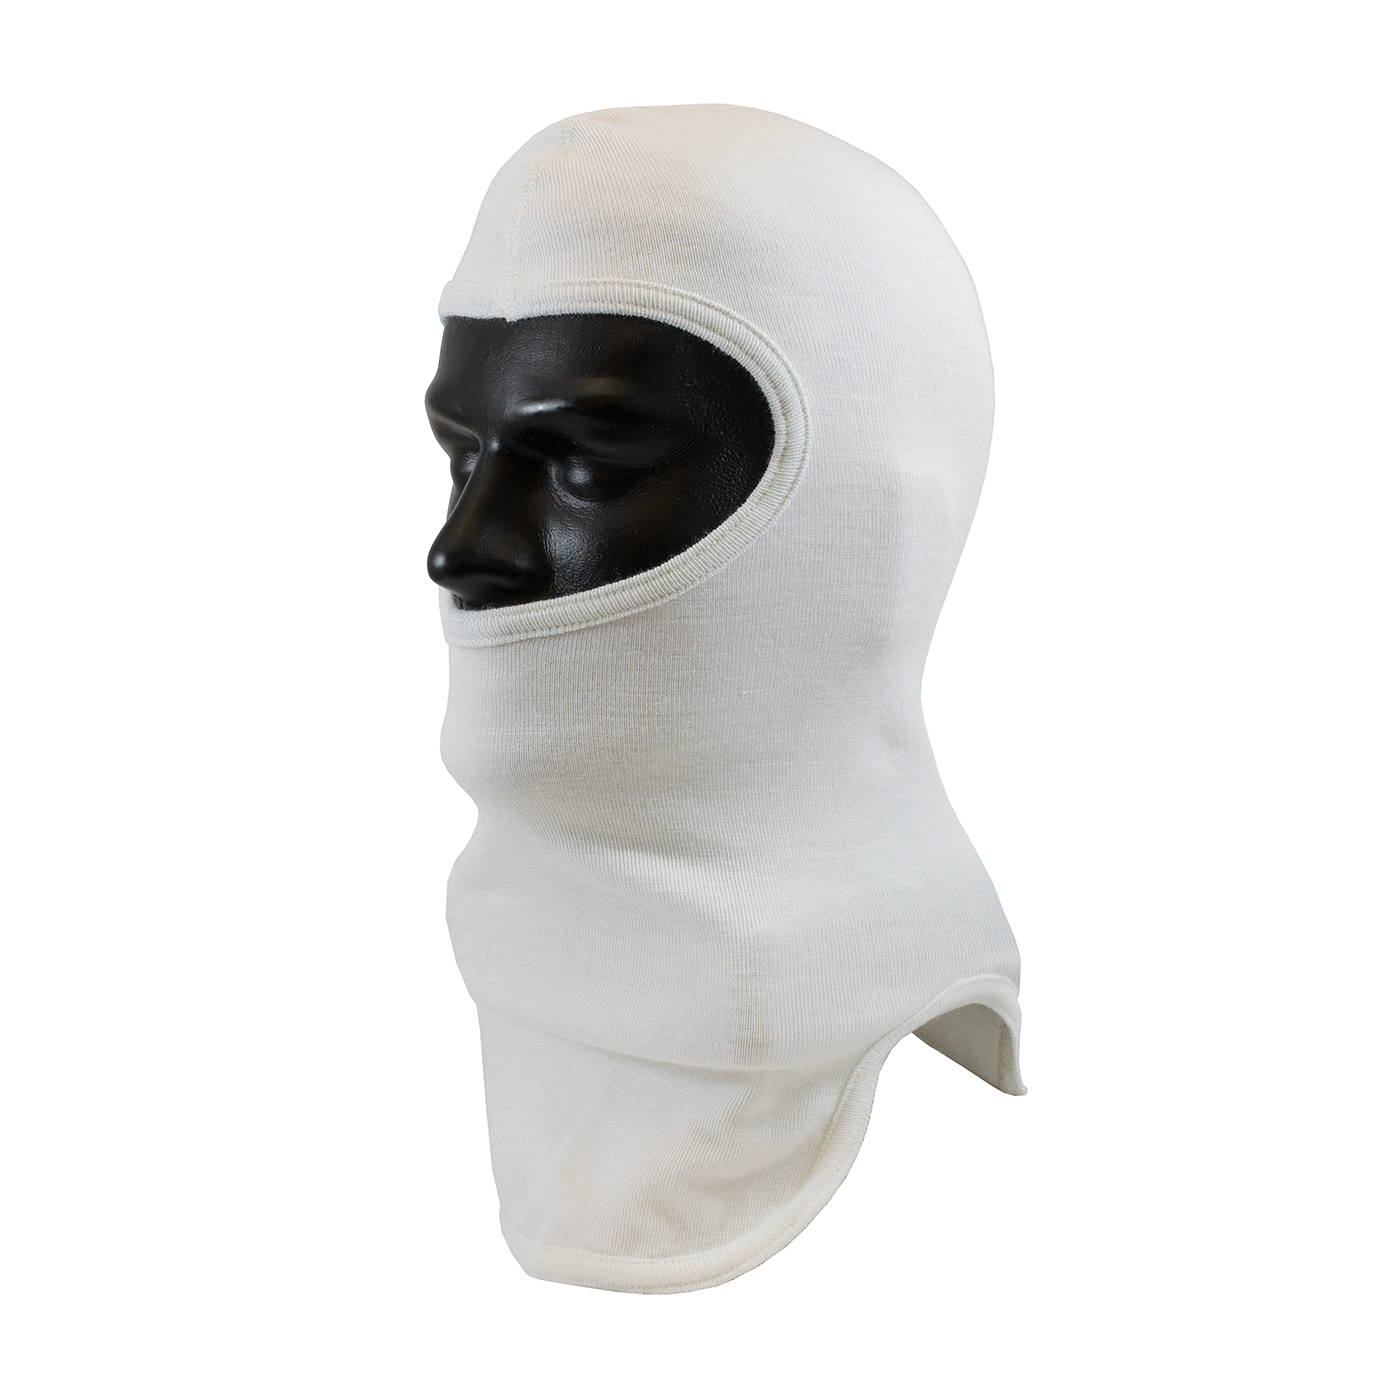 PIP® Double-Layer Tri-Cut White Nomex® Hood - Full Face #906-100NOM7